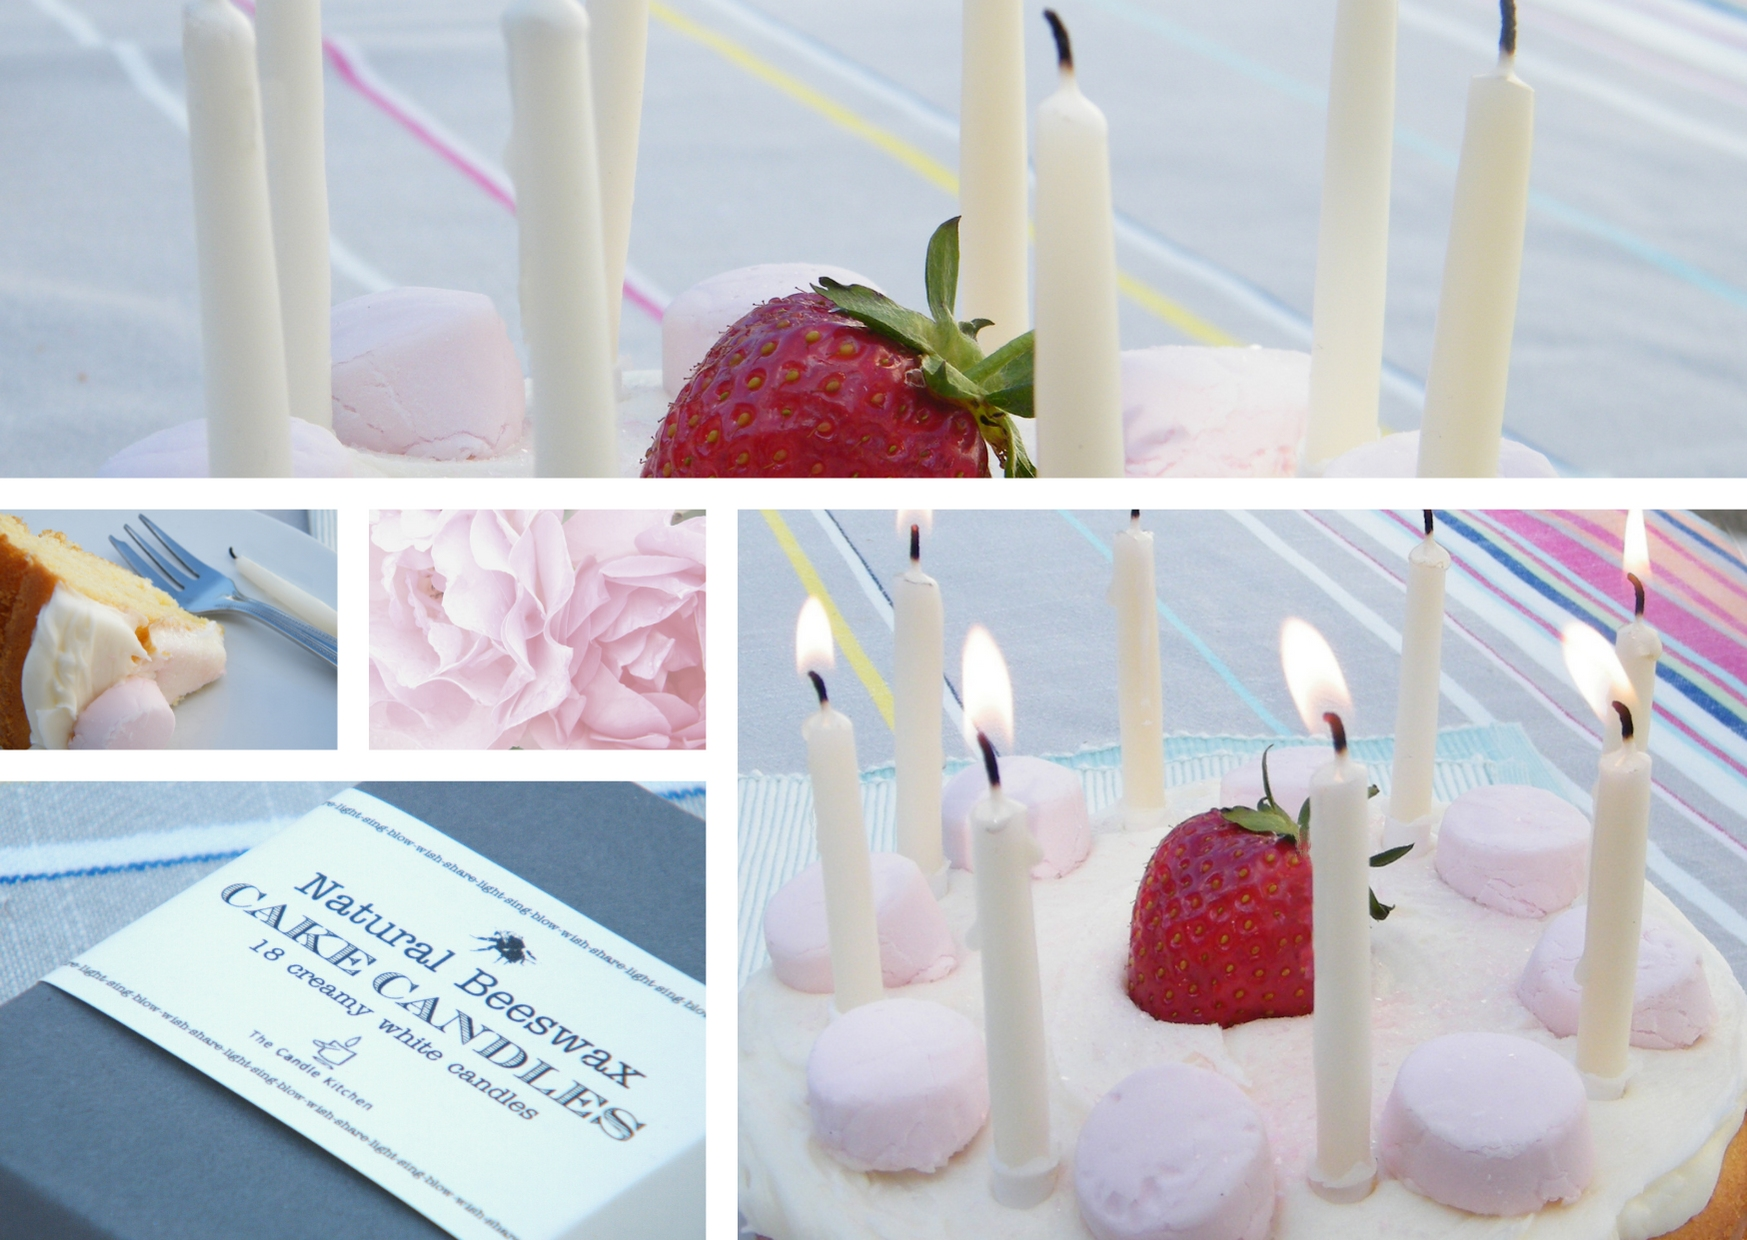 White beeswax cake candles on a cake